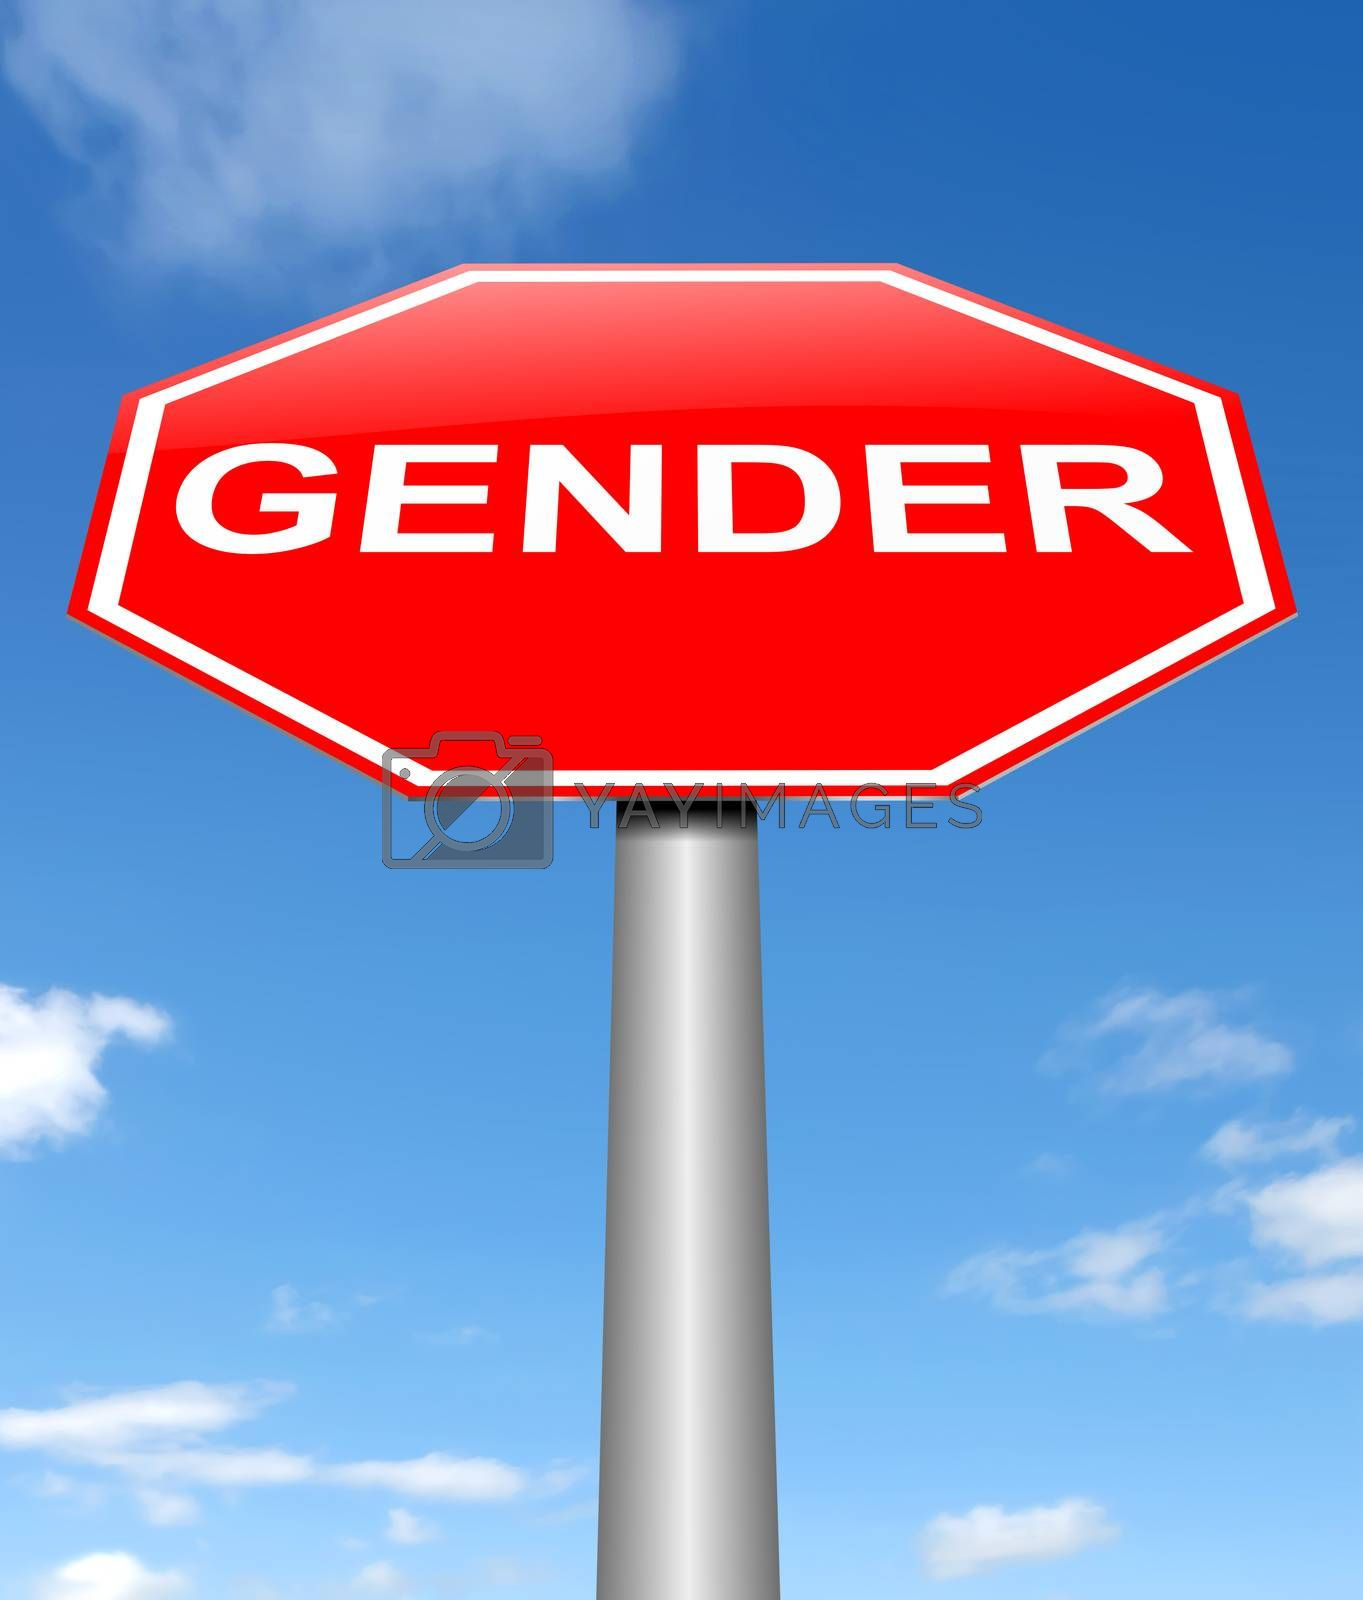 Illustration depicting a sign with a gender concept.